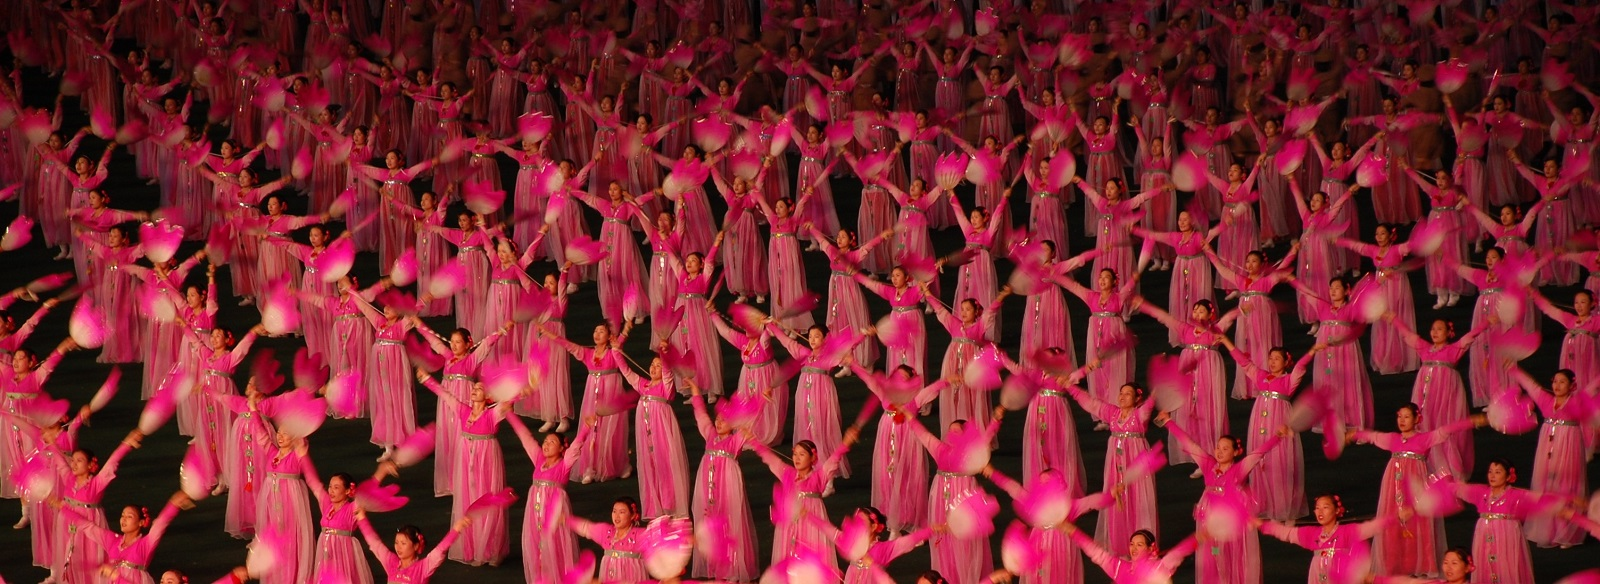 Mass games in Pyongyang  (Photo: Flickr/(stephan)